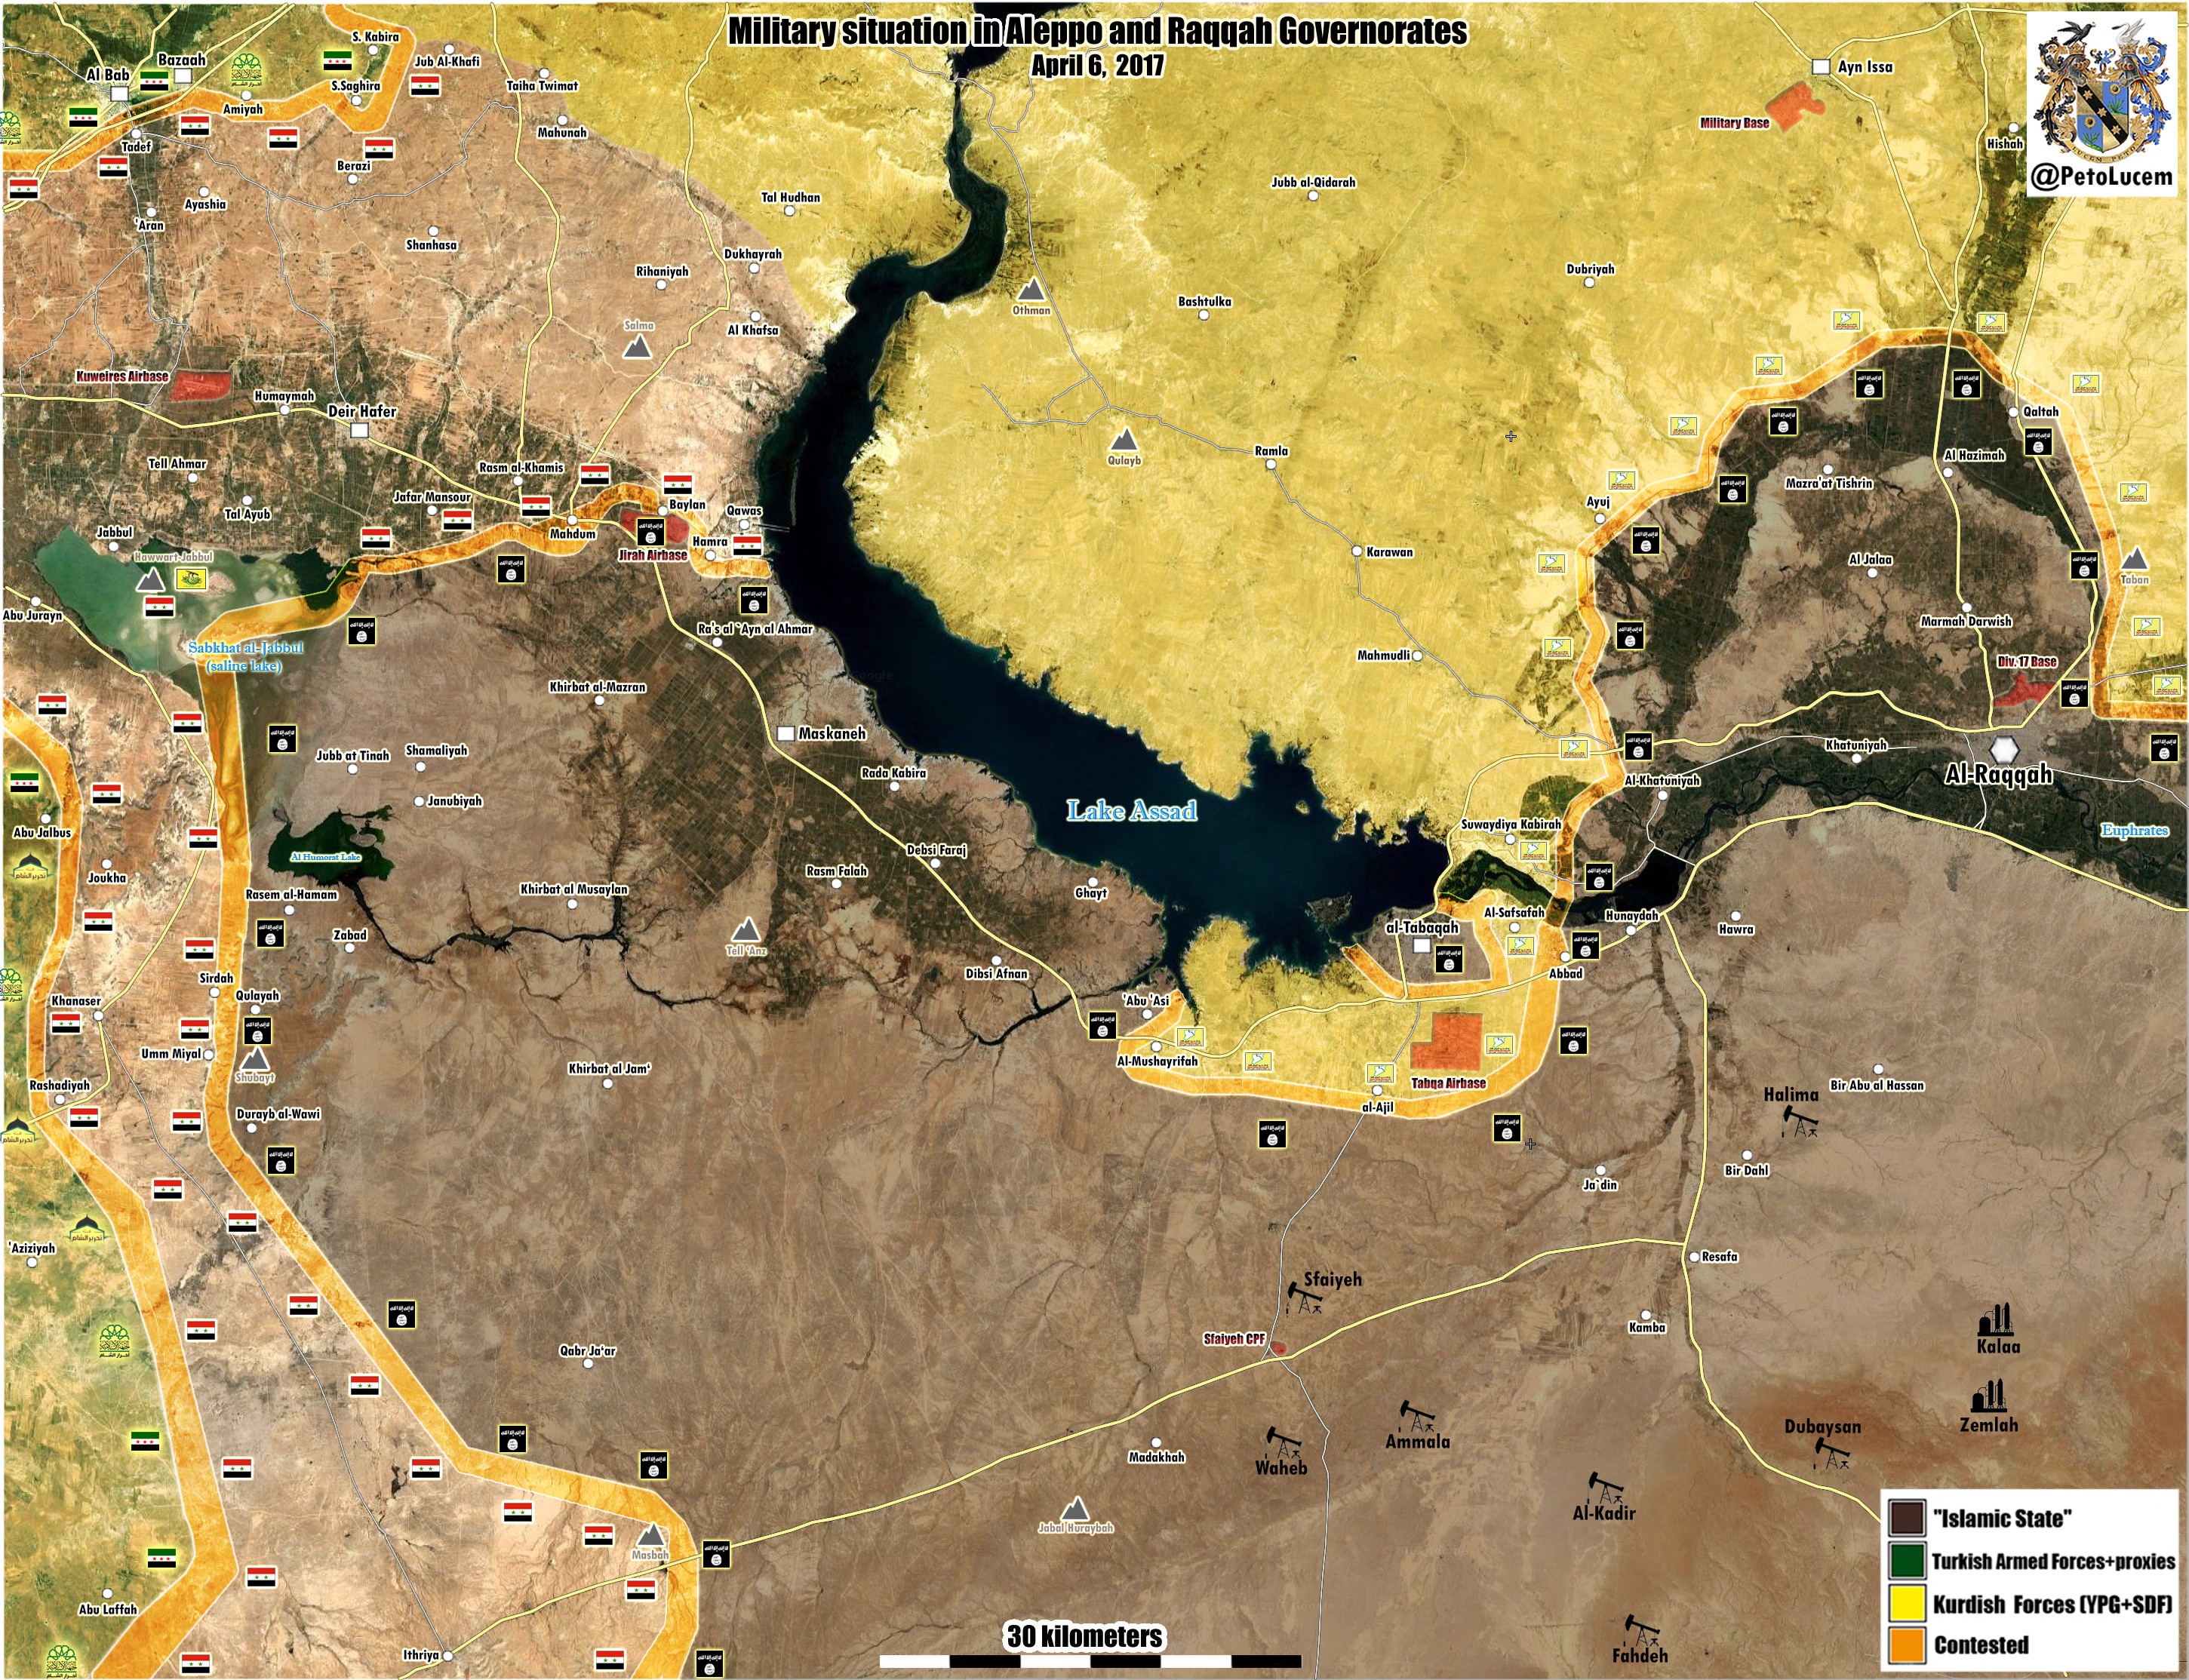 MIitary Situation In Raqqah-Aleppo Countryside On April 6, 2017 (Map Update)